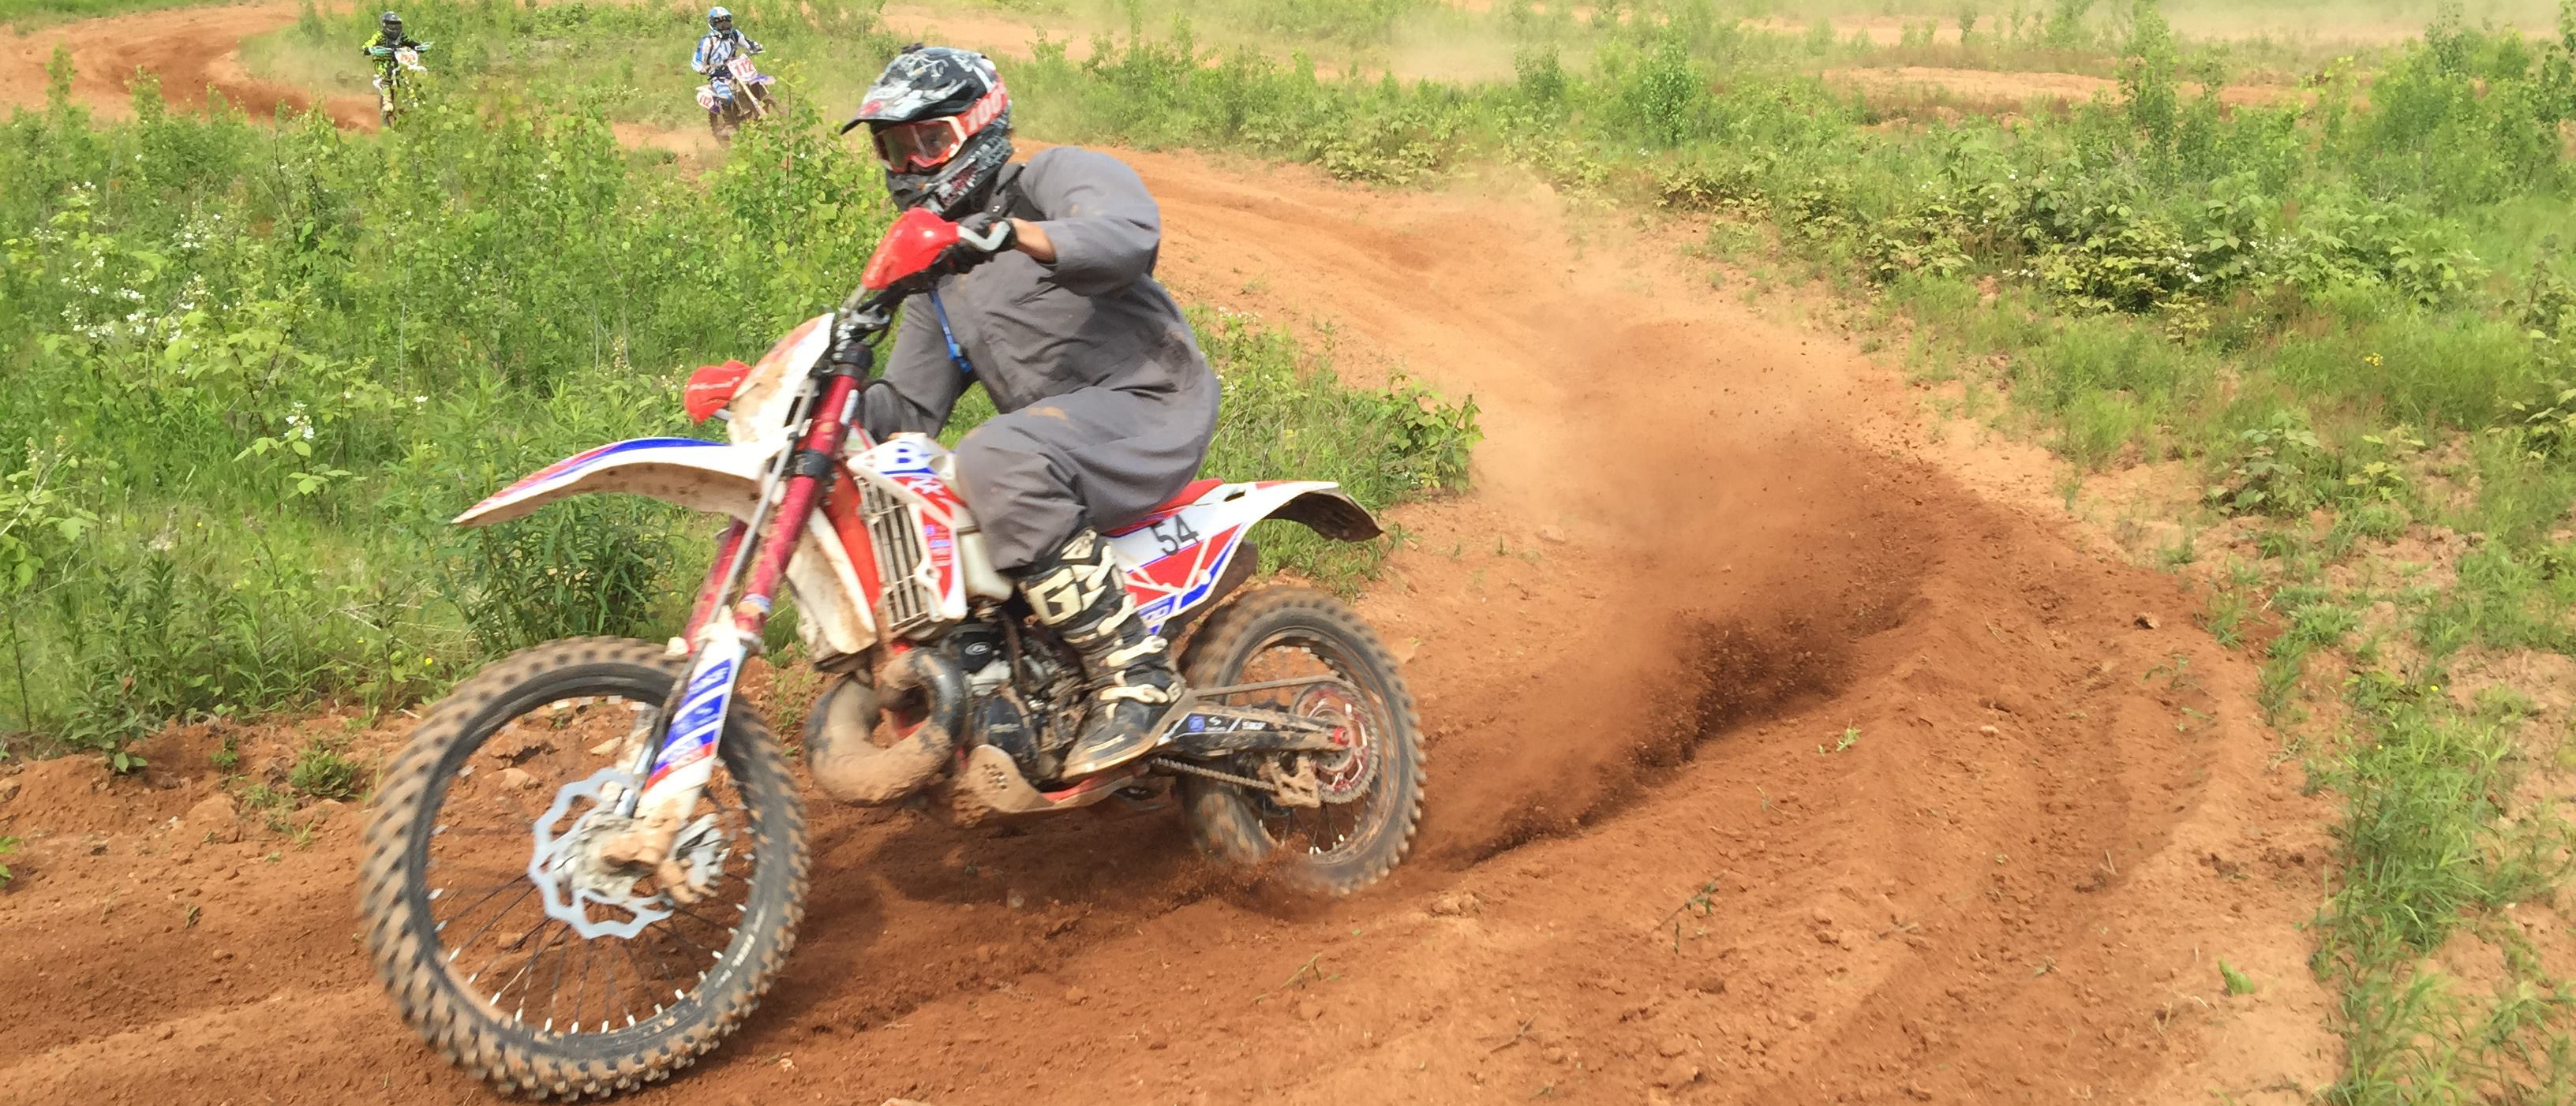 Charging Hard on the moto portion of the Hare Scramble race course